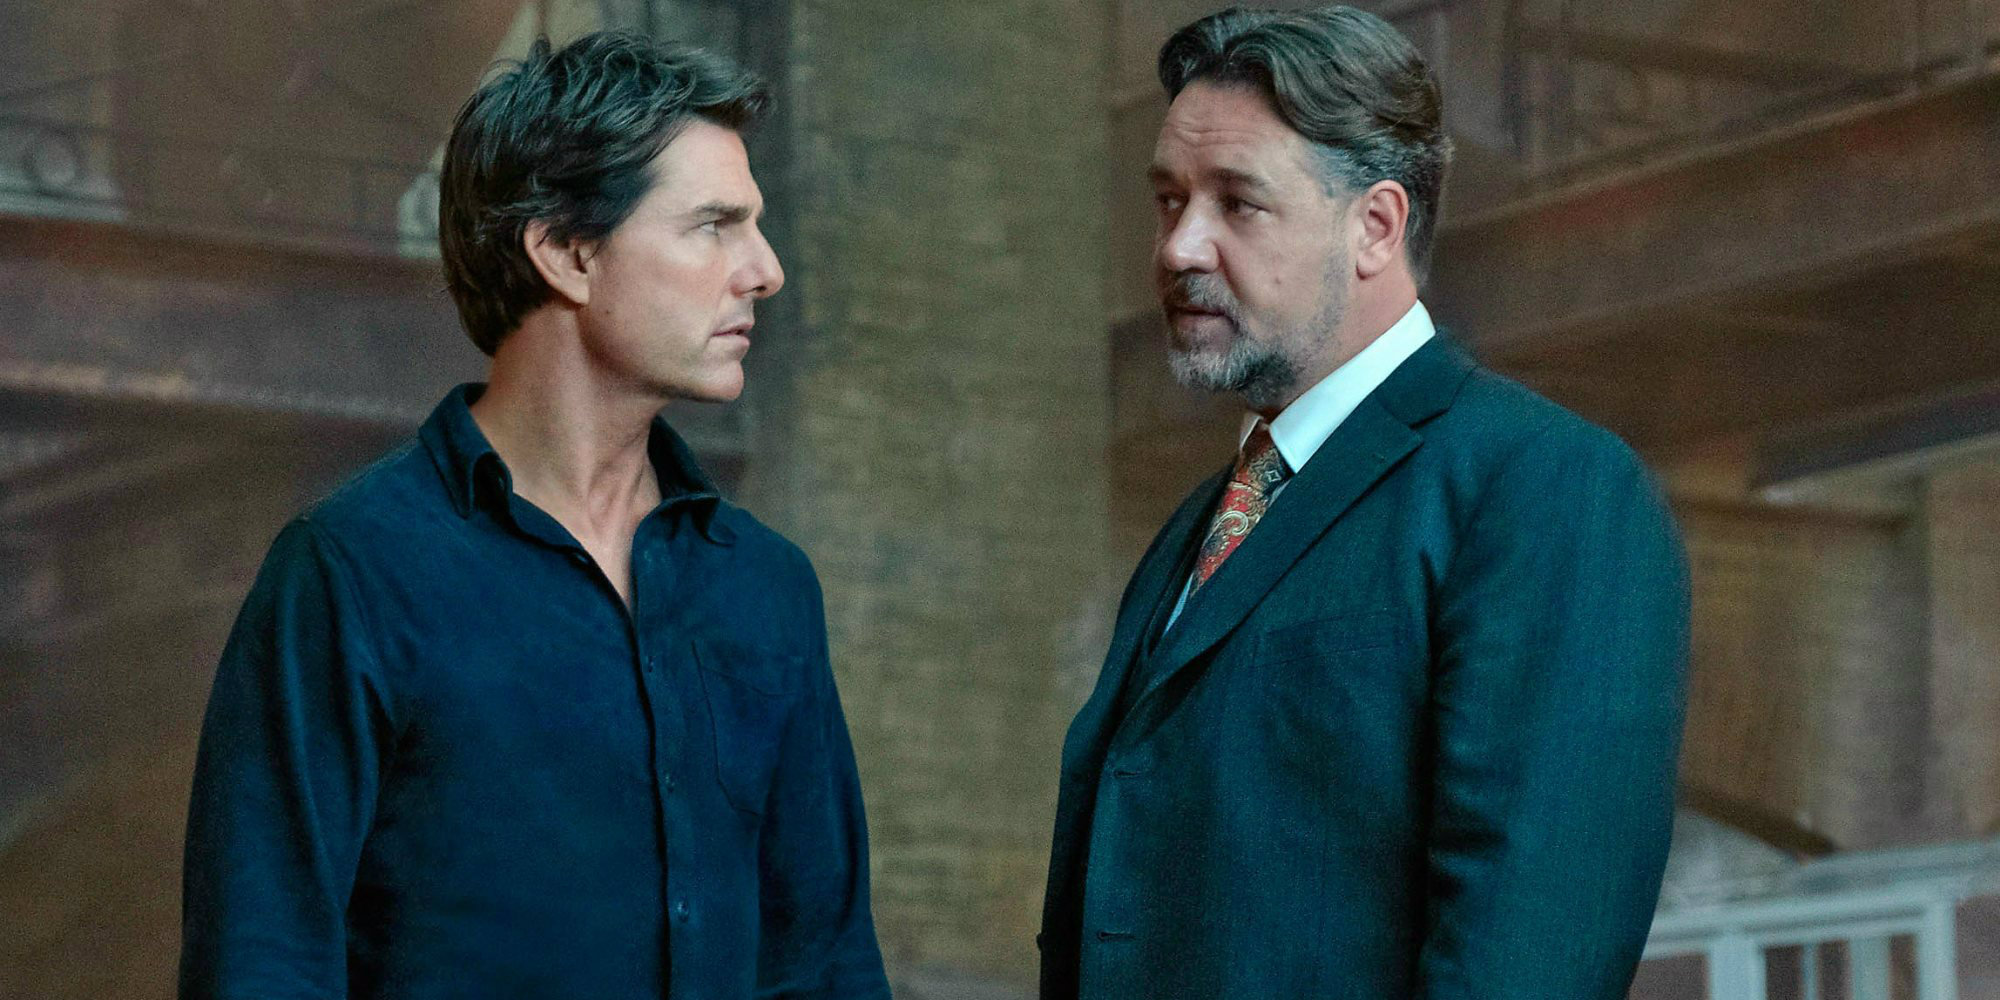 The Mummy - Tom Cruise and Russell Crowe (as Jeyll)